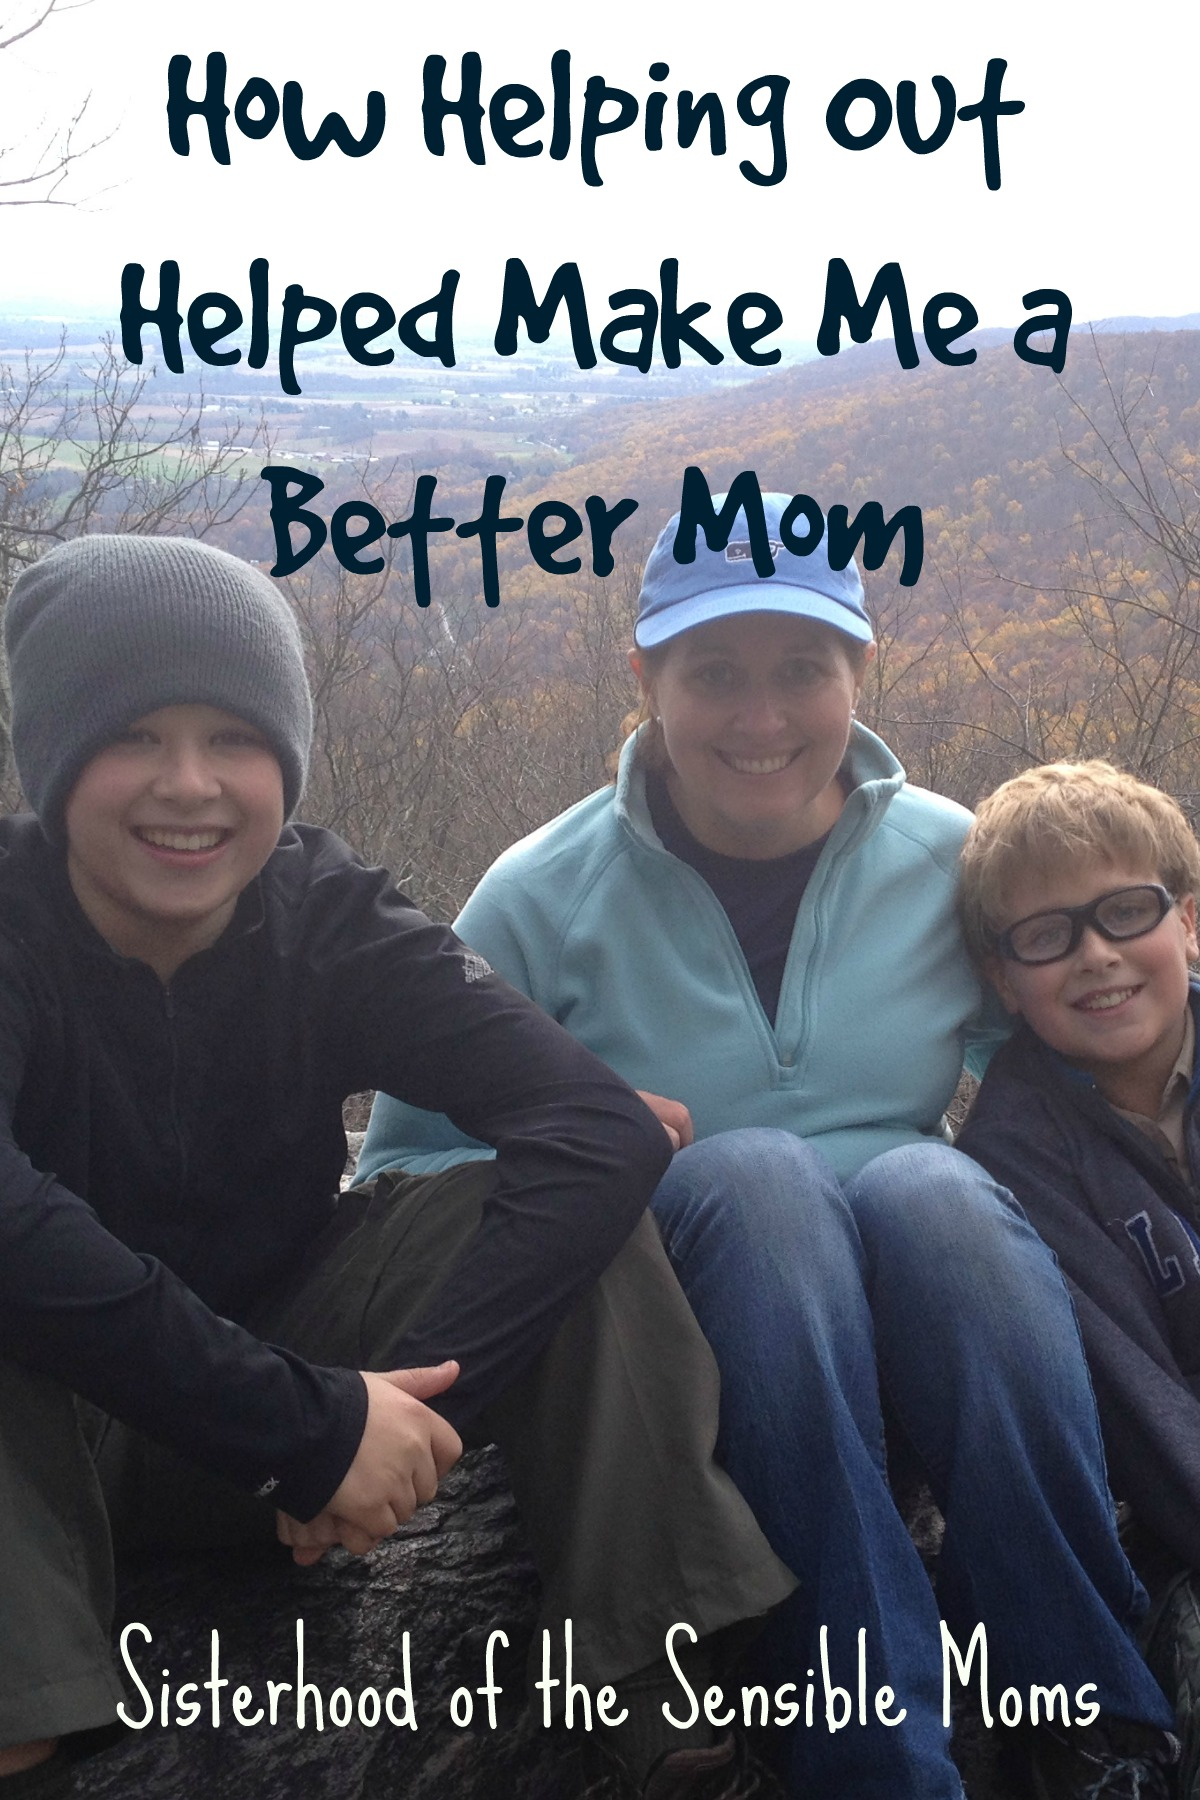 Parenting can be hard. Helping out helped make me a better mom. How volunteering for the PTA or Scouts can help you too! | Sisterhood of the Sensible Moms